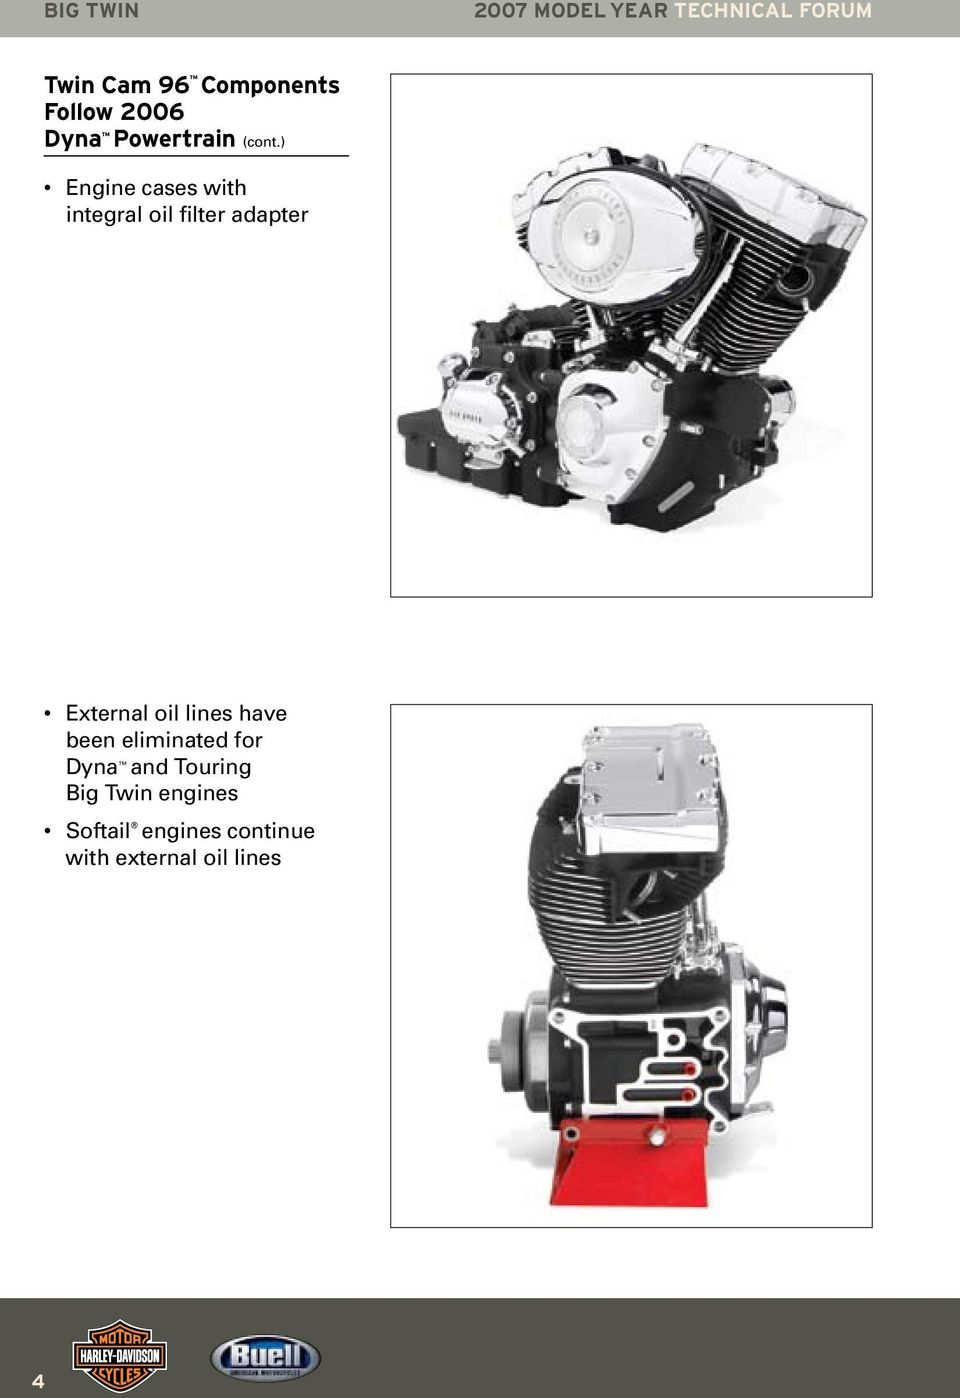 Harley Davidson University Tech N Ical F Or U M 2007 Model Year Pdf 07 Flhtcu Wiring Diagrams Color Engine Cases With Integral Oil Filter Adapter External Lines